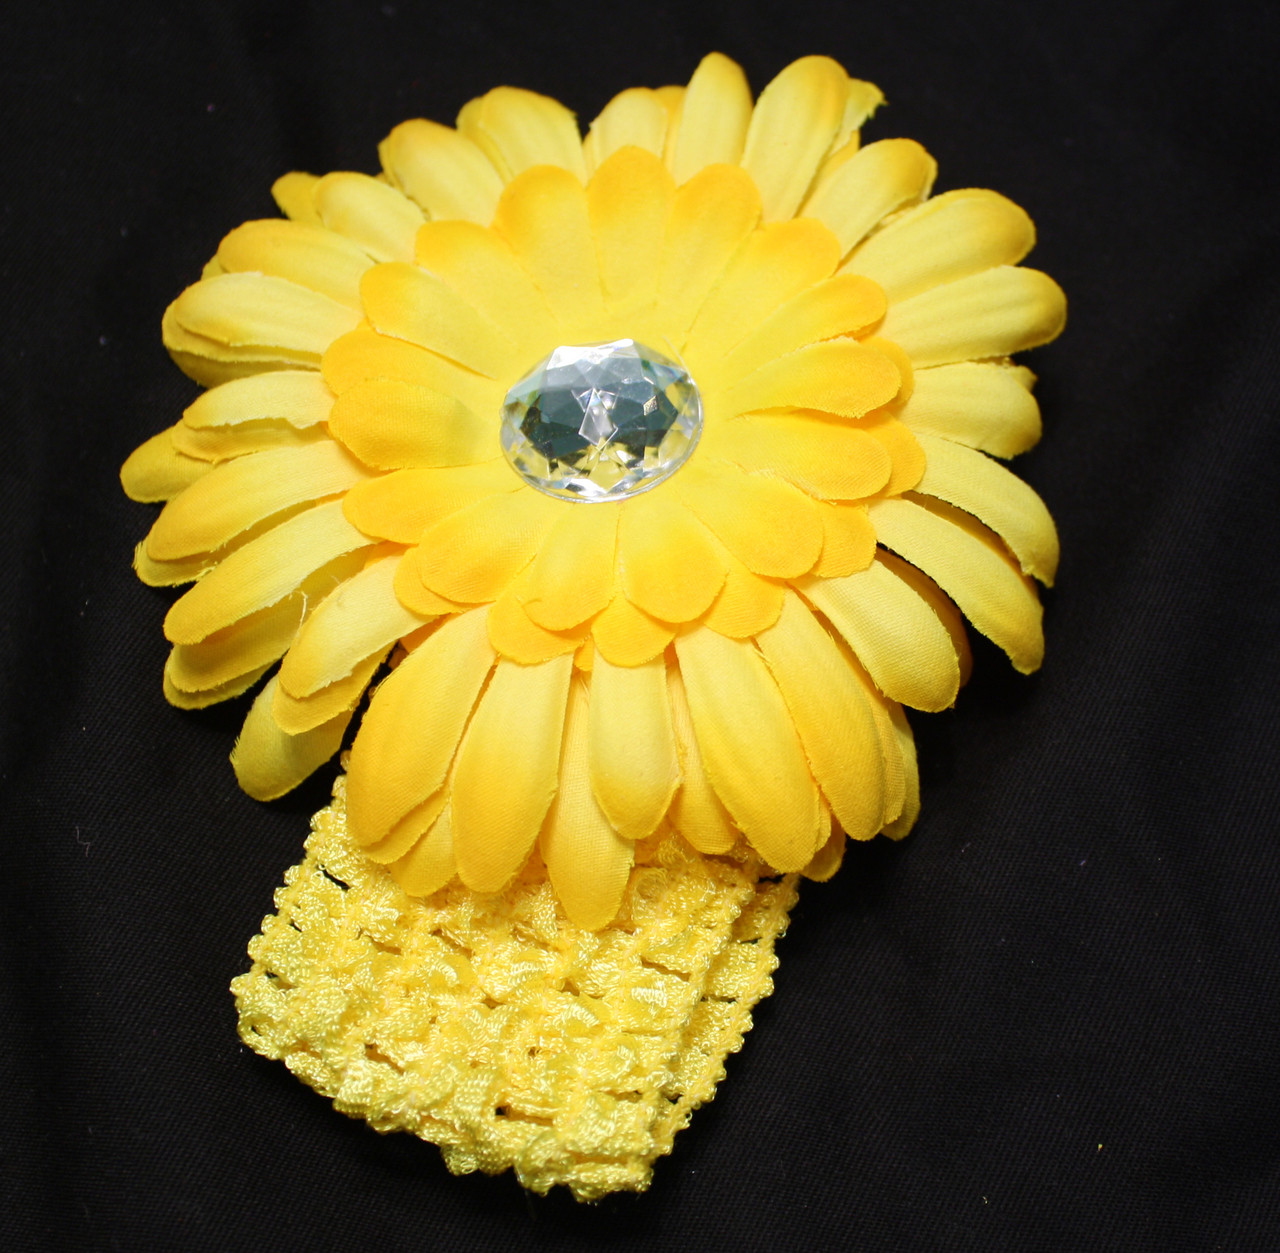 Yelllow Gerbera daisy flower crochet headband